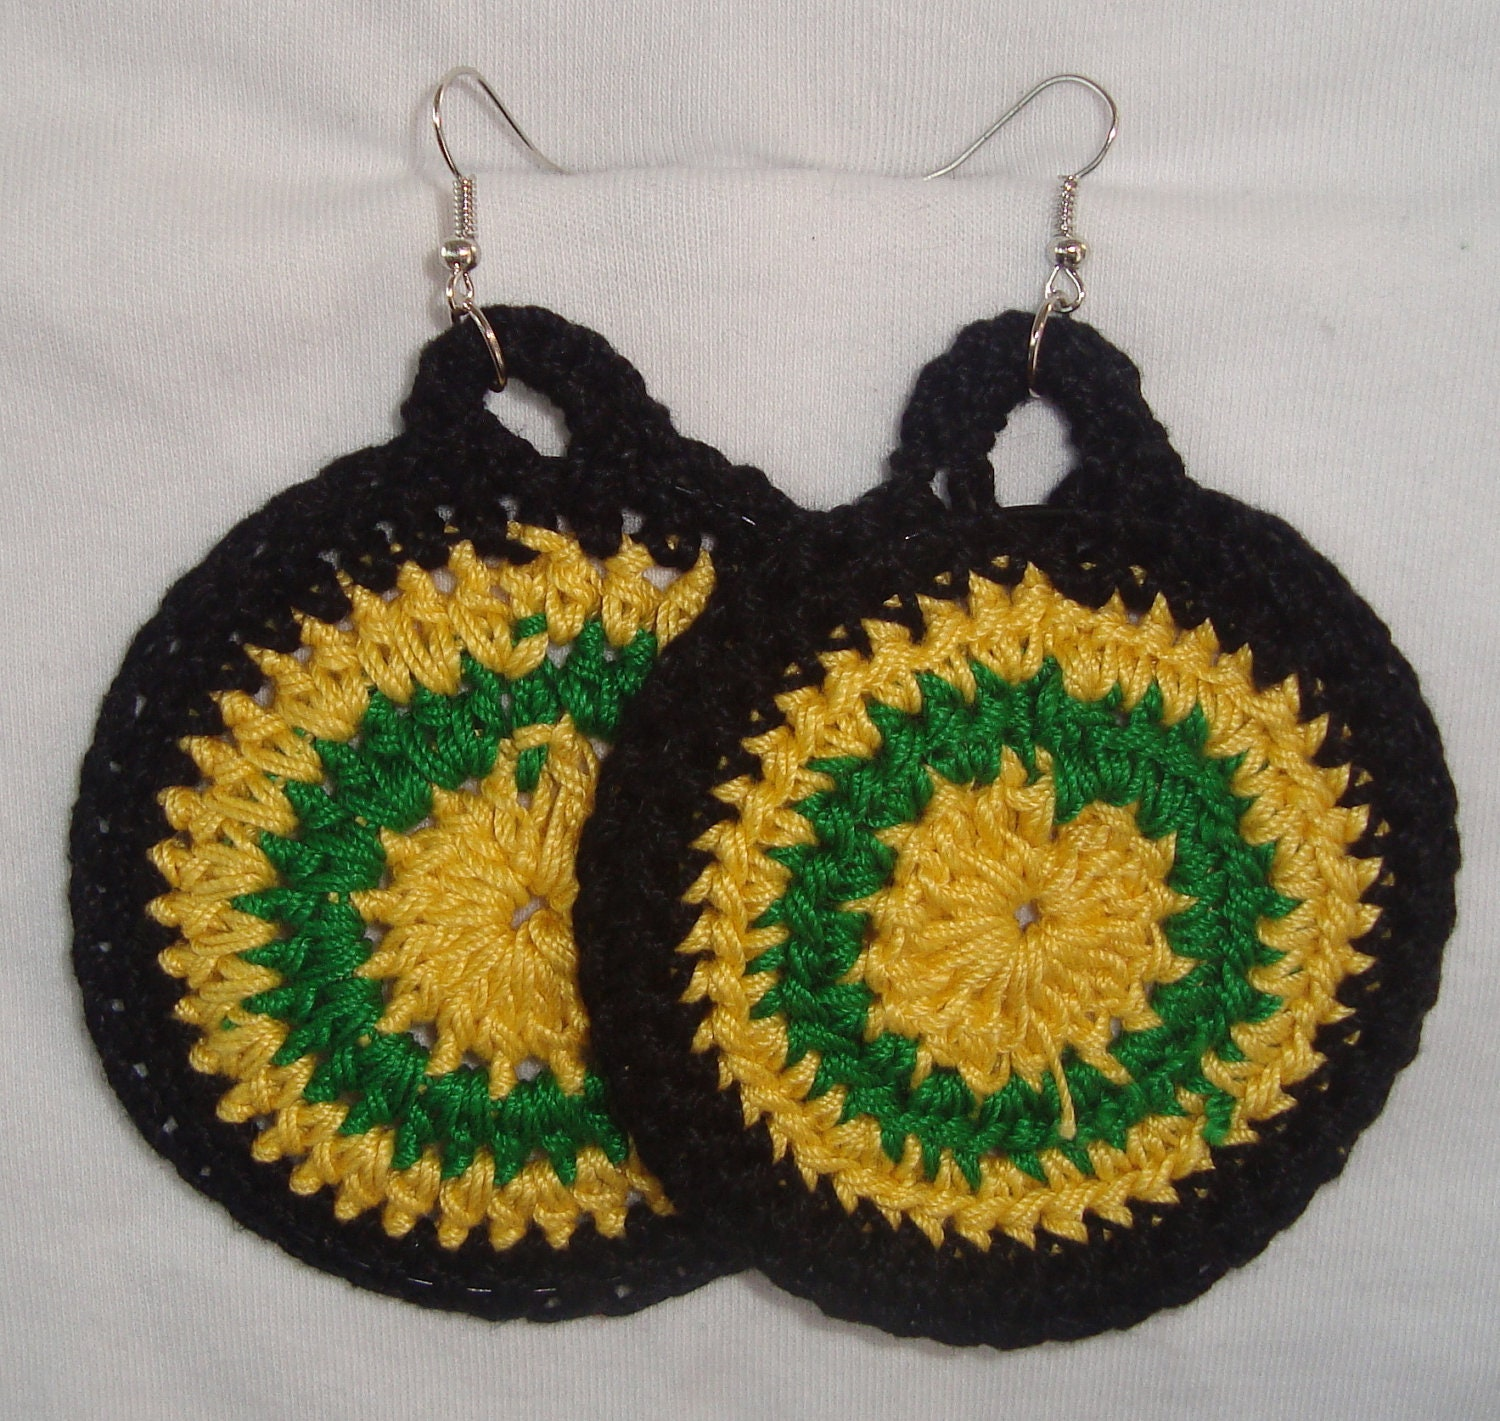 Crochet Earrings/ 5 Different Earring 12.00 Each